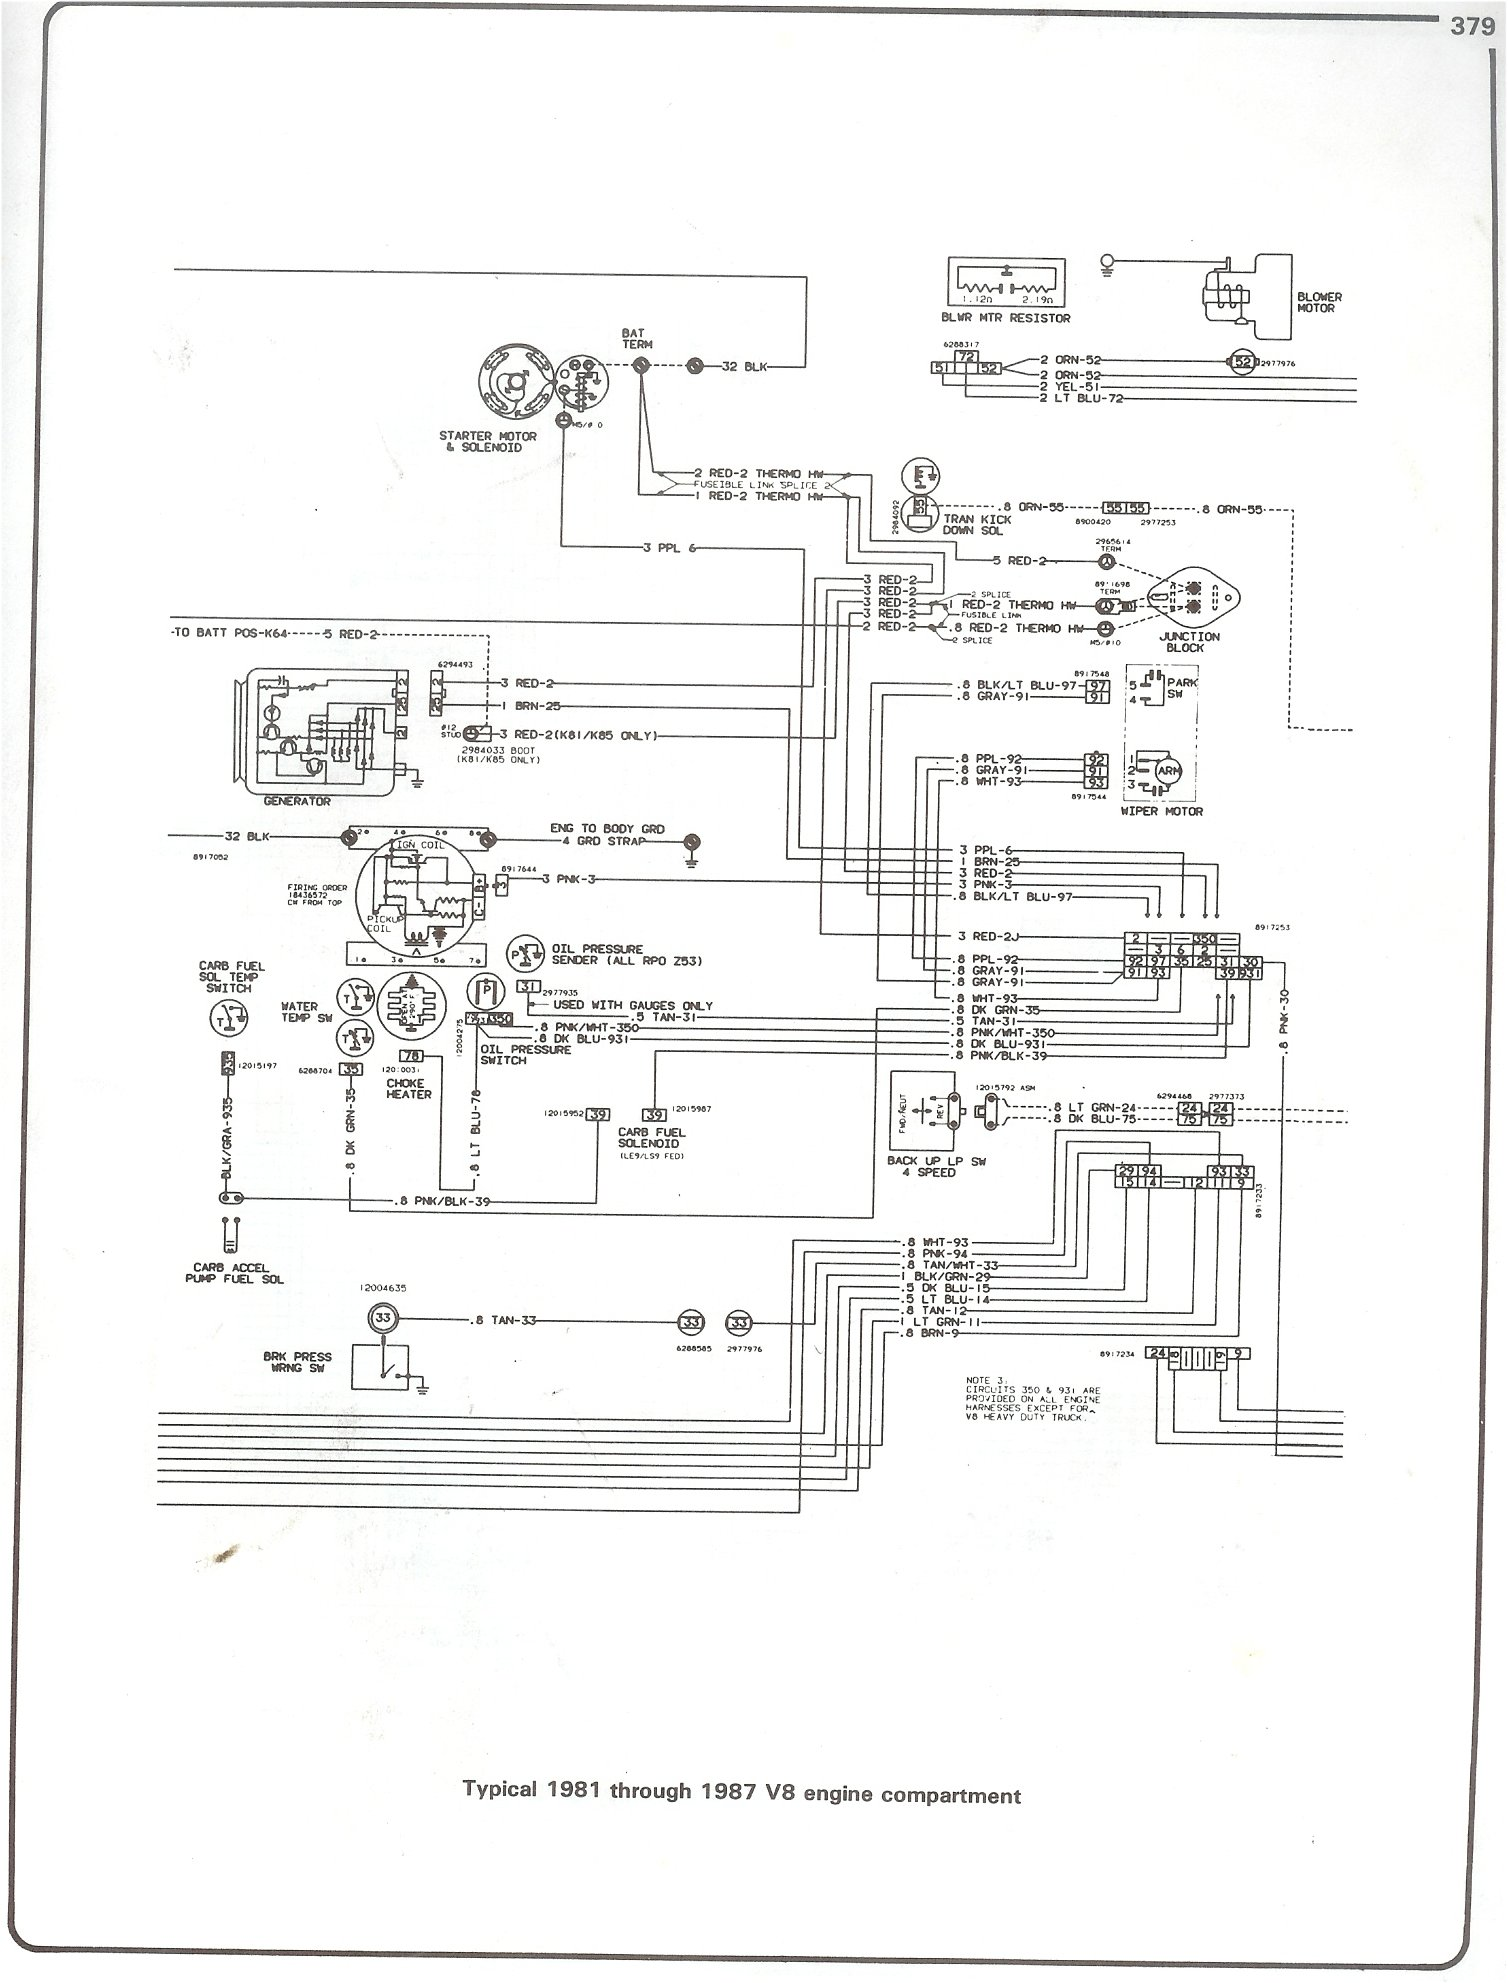 81 87_V8_engine complete 73 87 wiring diagrams 1985 chevy scottsdale wiring diagram at bakdesigns.co